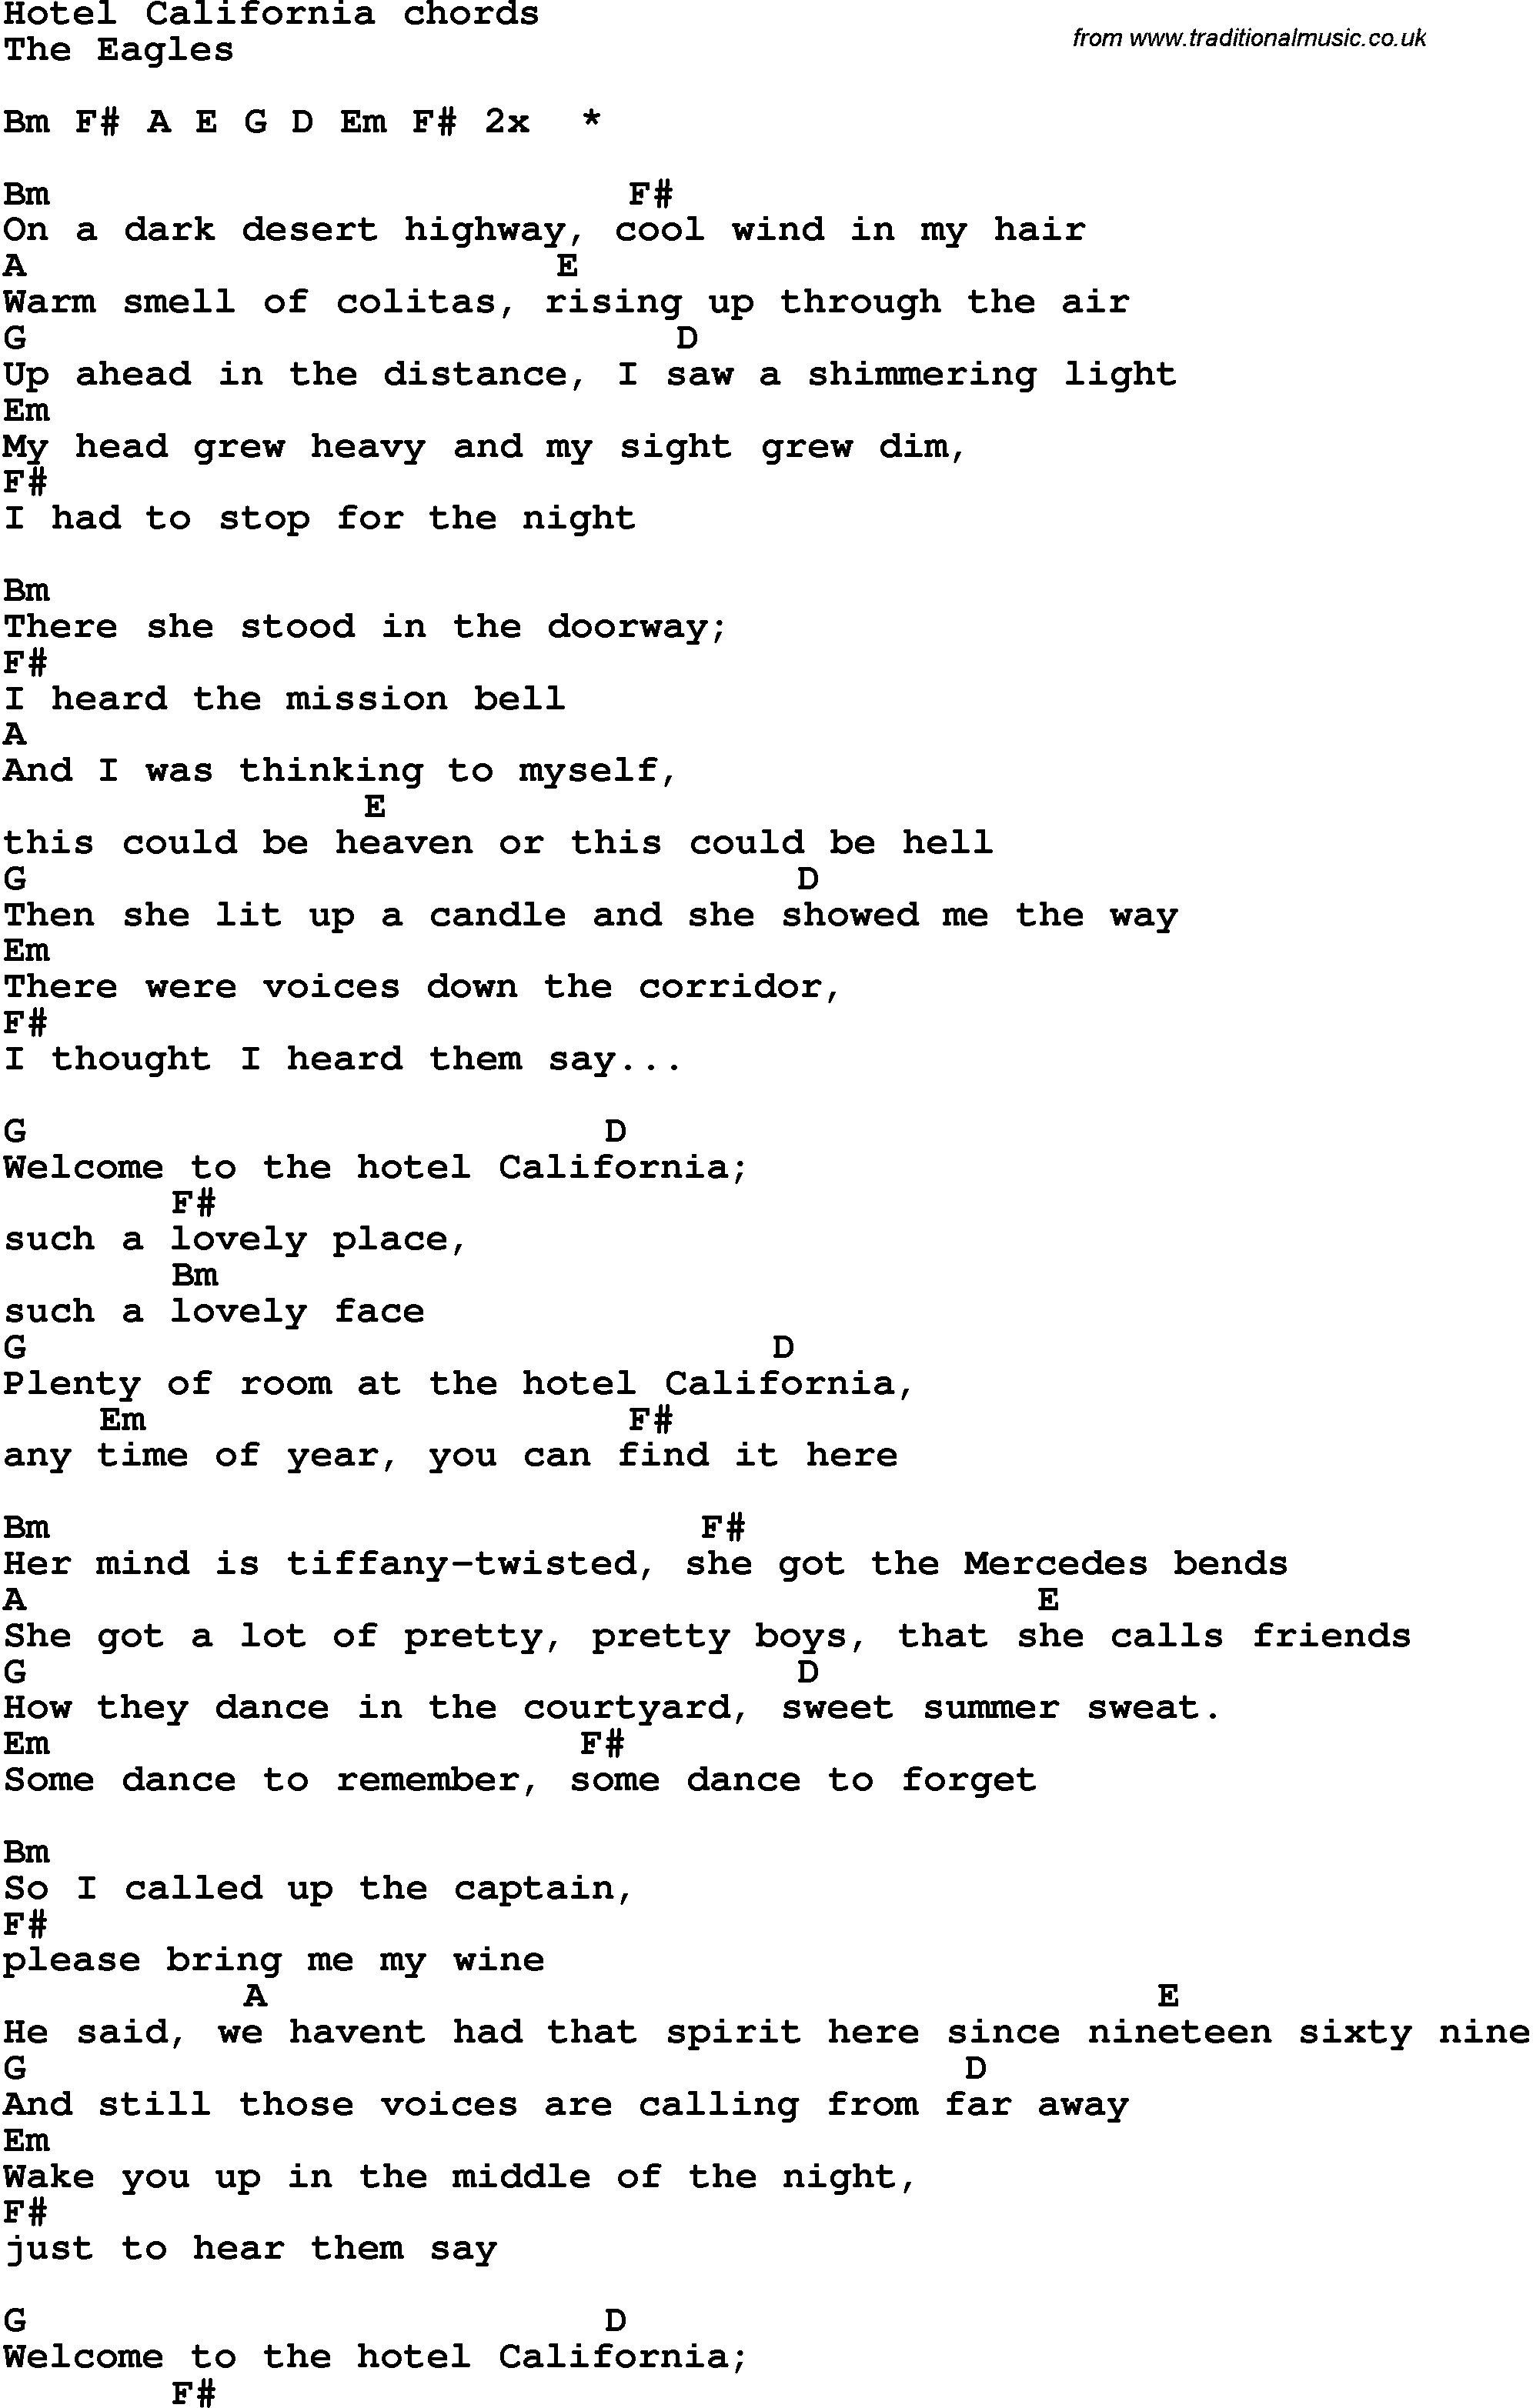 Song Lyrics With Guitar Chords For Hotel California